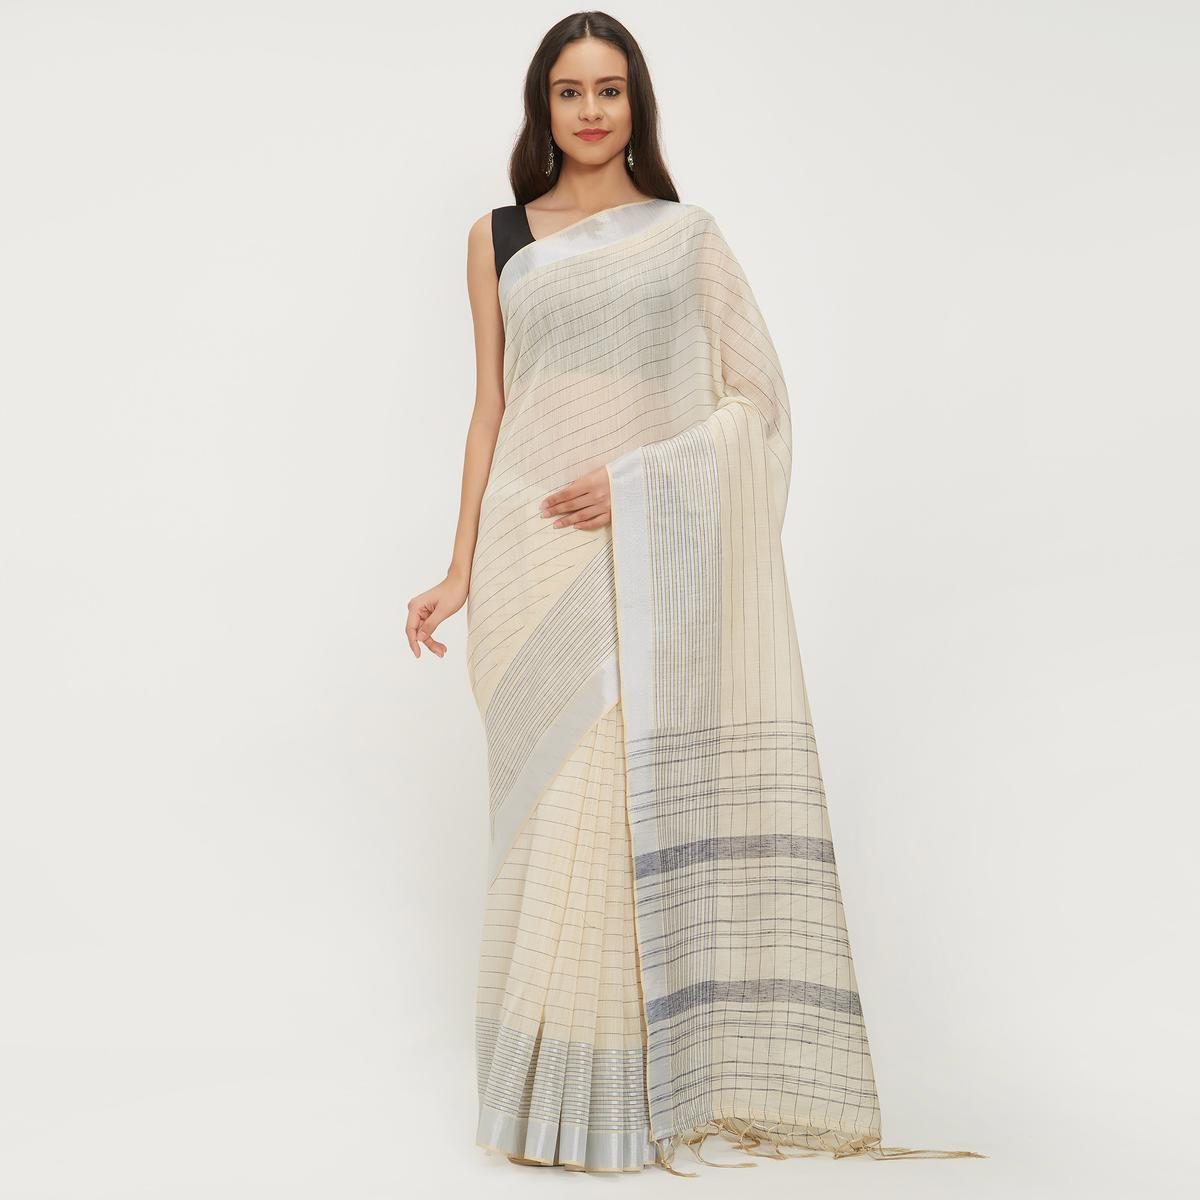 Appealing Off-White Colored Casual Wear Linen Saree With 2 Blouse Pieces